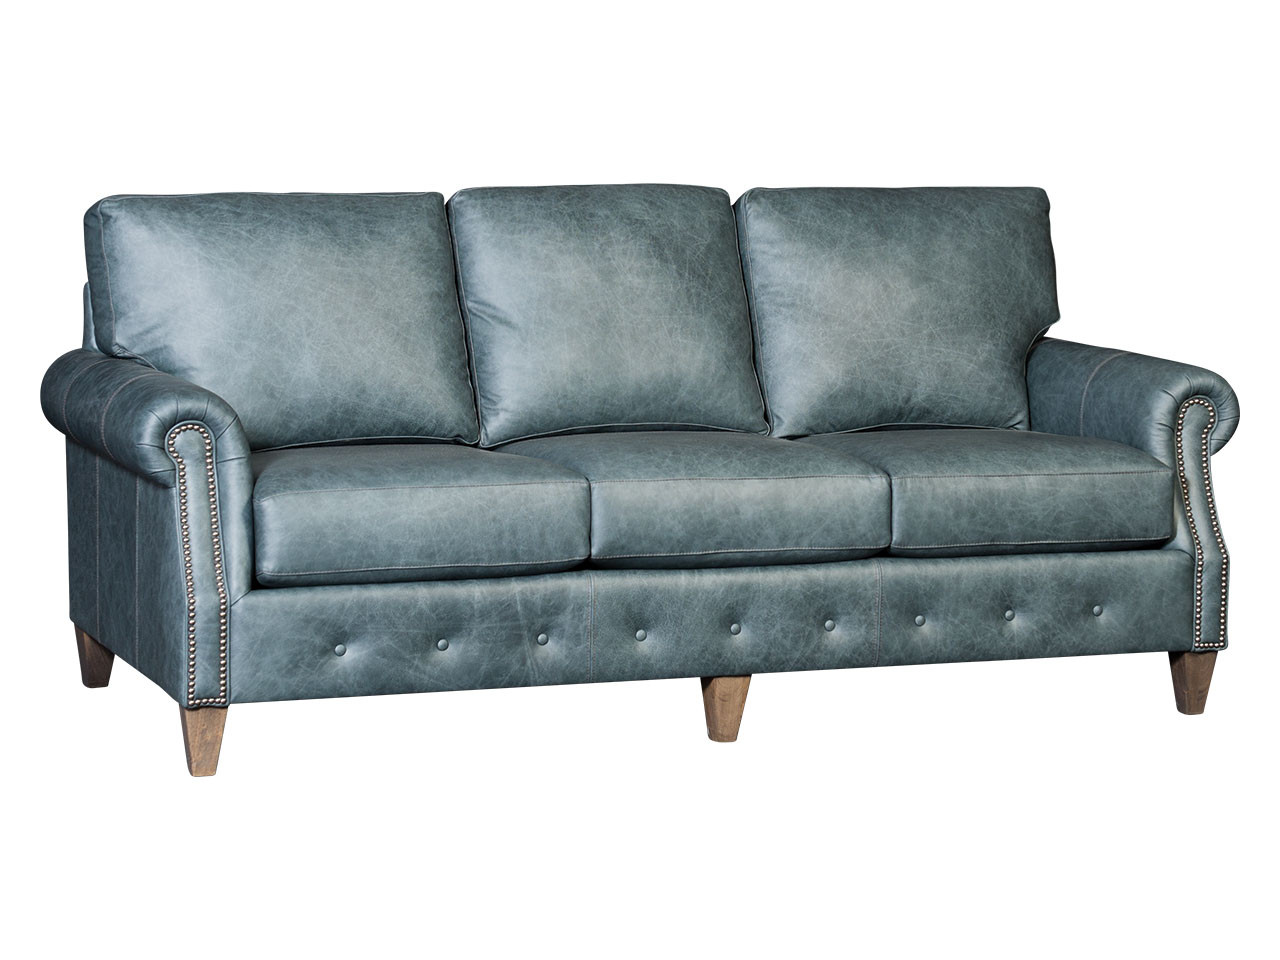 Tufted base leather sofa by Mayo Furniture